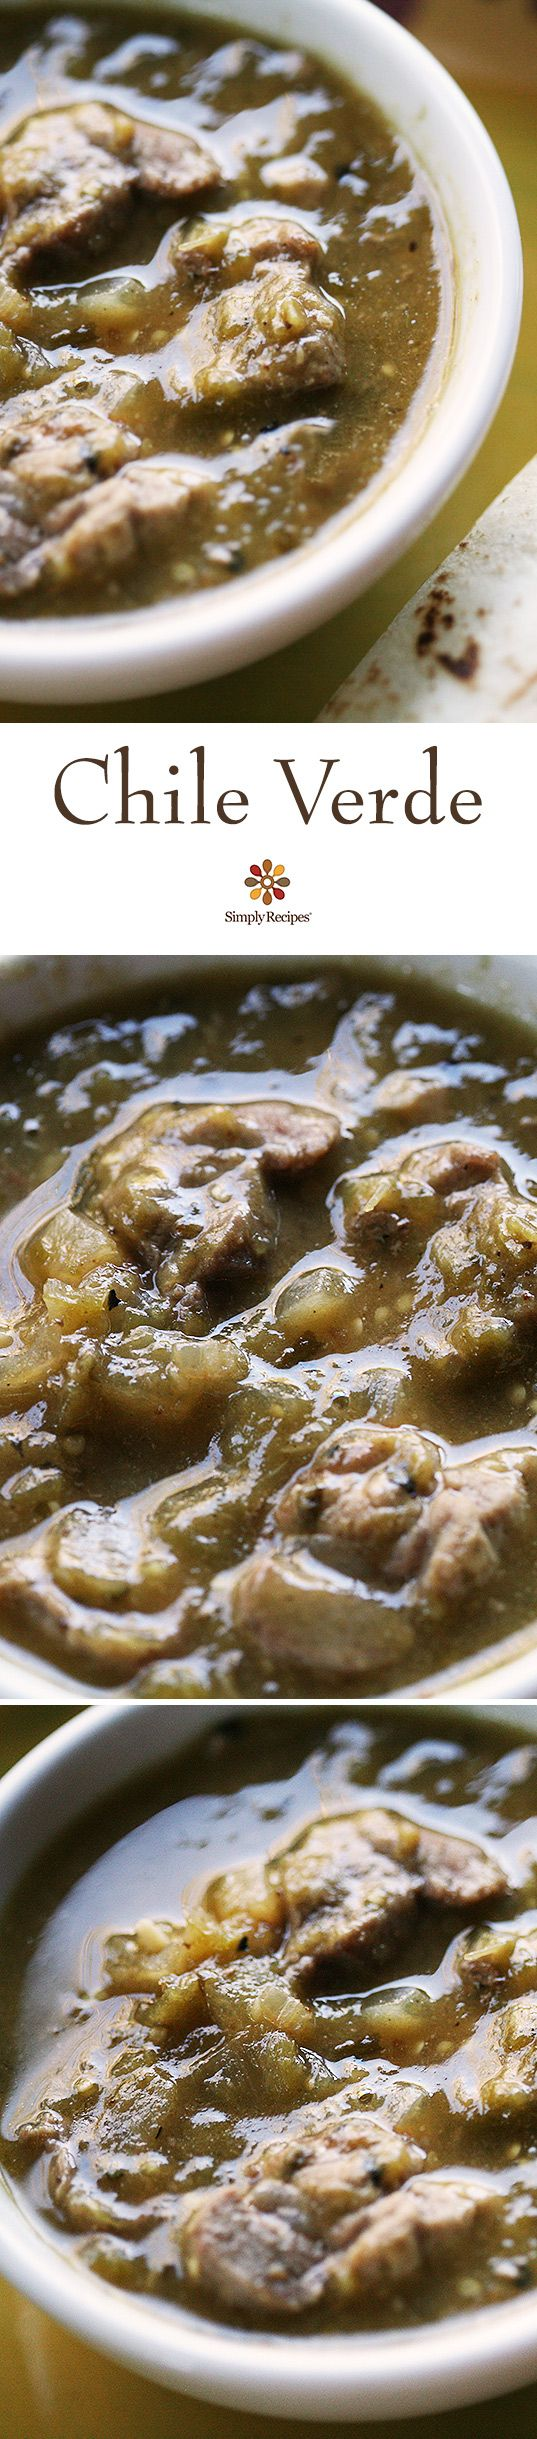 Authentic Mexican pork chile verde! with chunks of pork shoulder slow cooked in a roasted tomatillo and jalapeno chile verde sauce. So good! #Tomatillos #ChileVerde #MexicanFood #Pork